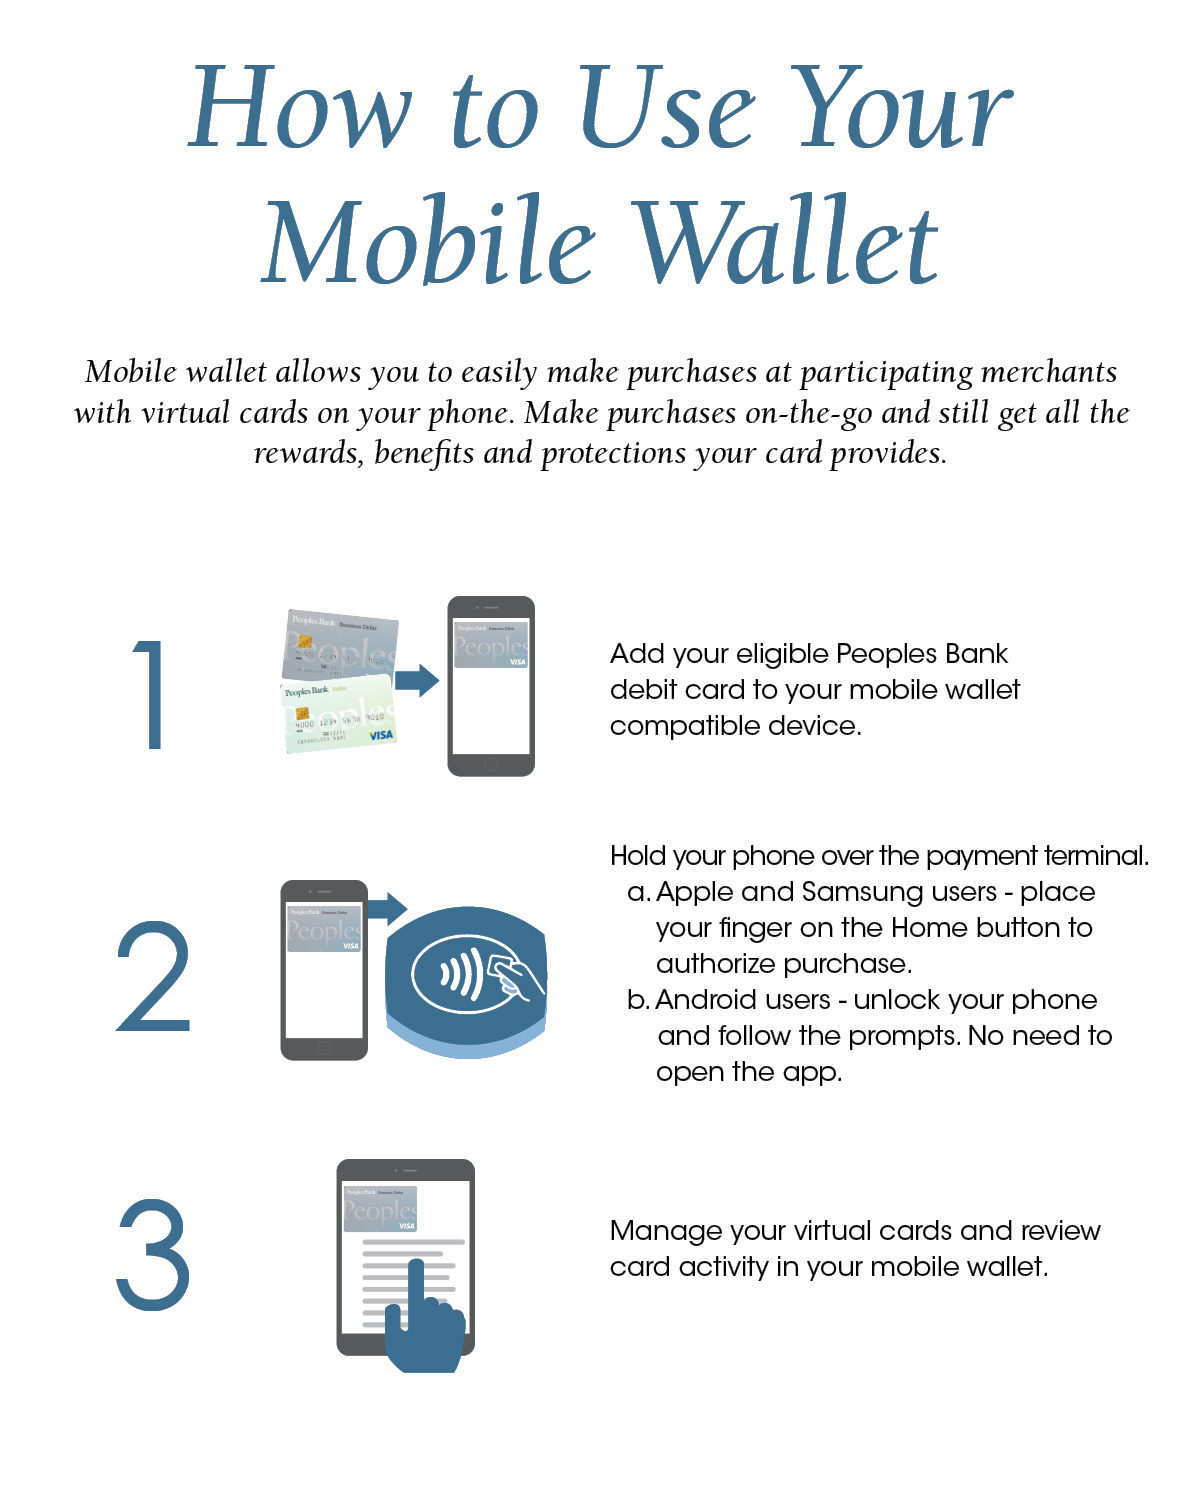 How to Use Your Mobile Wallet